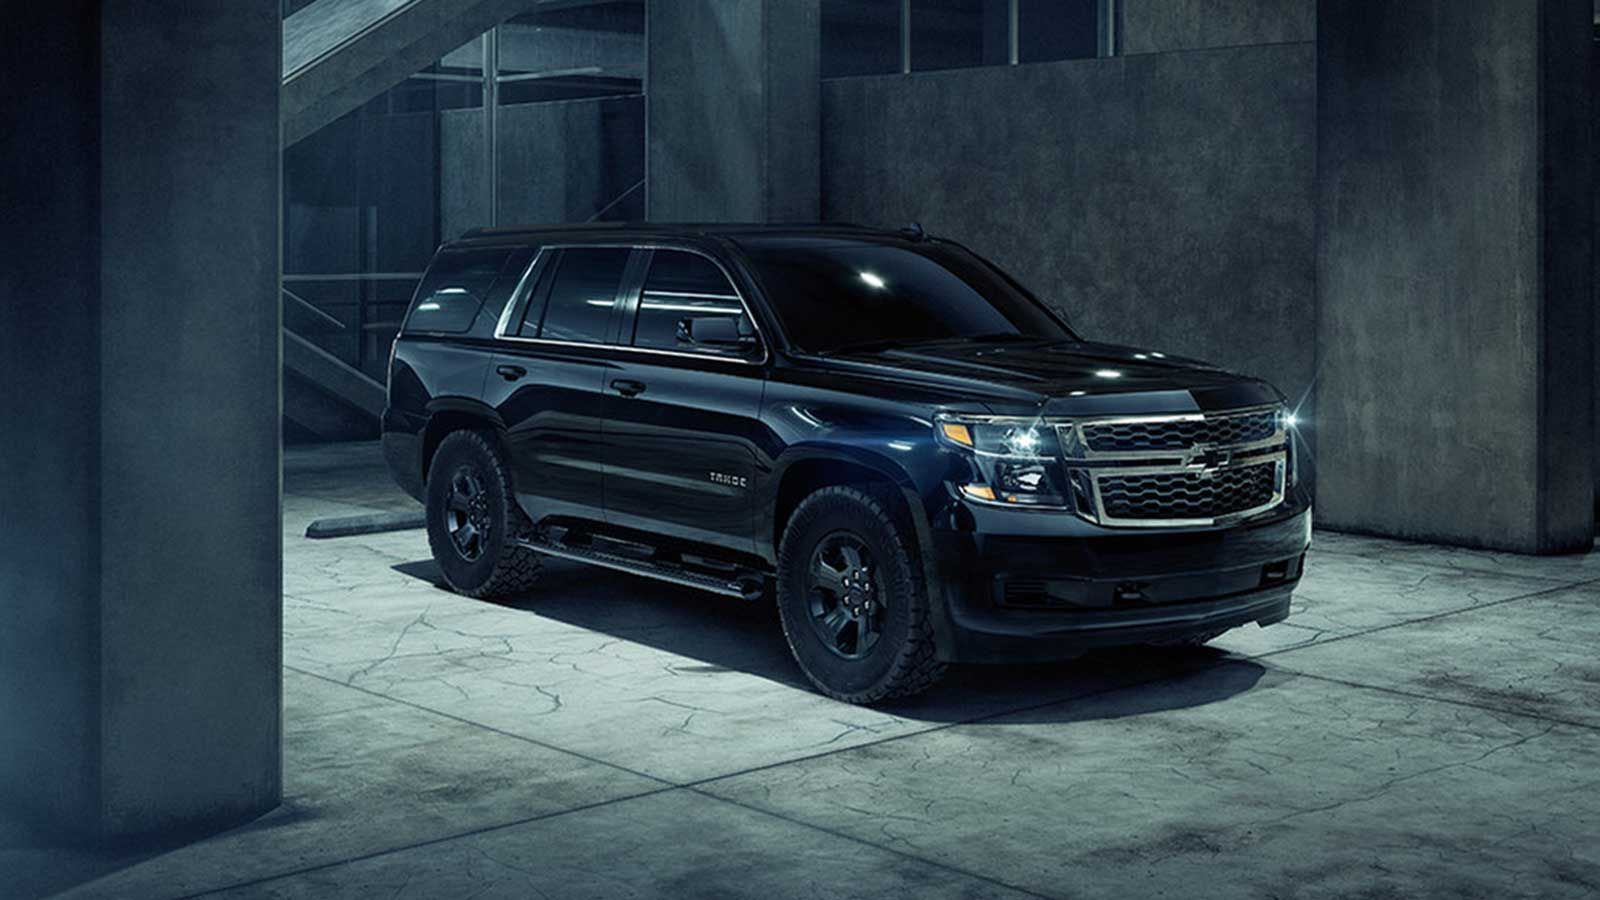 2018 Tahoe Midnight Special Editions With Images Chevrolet